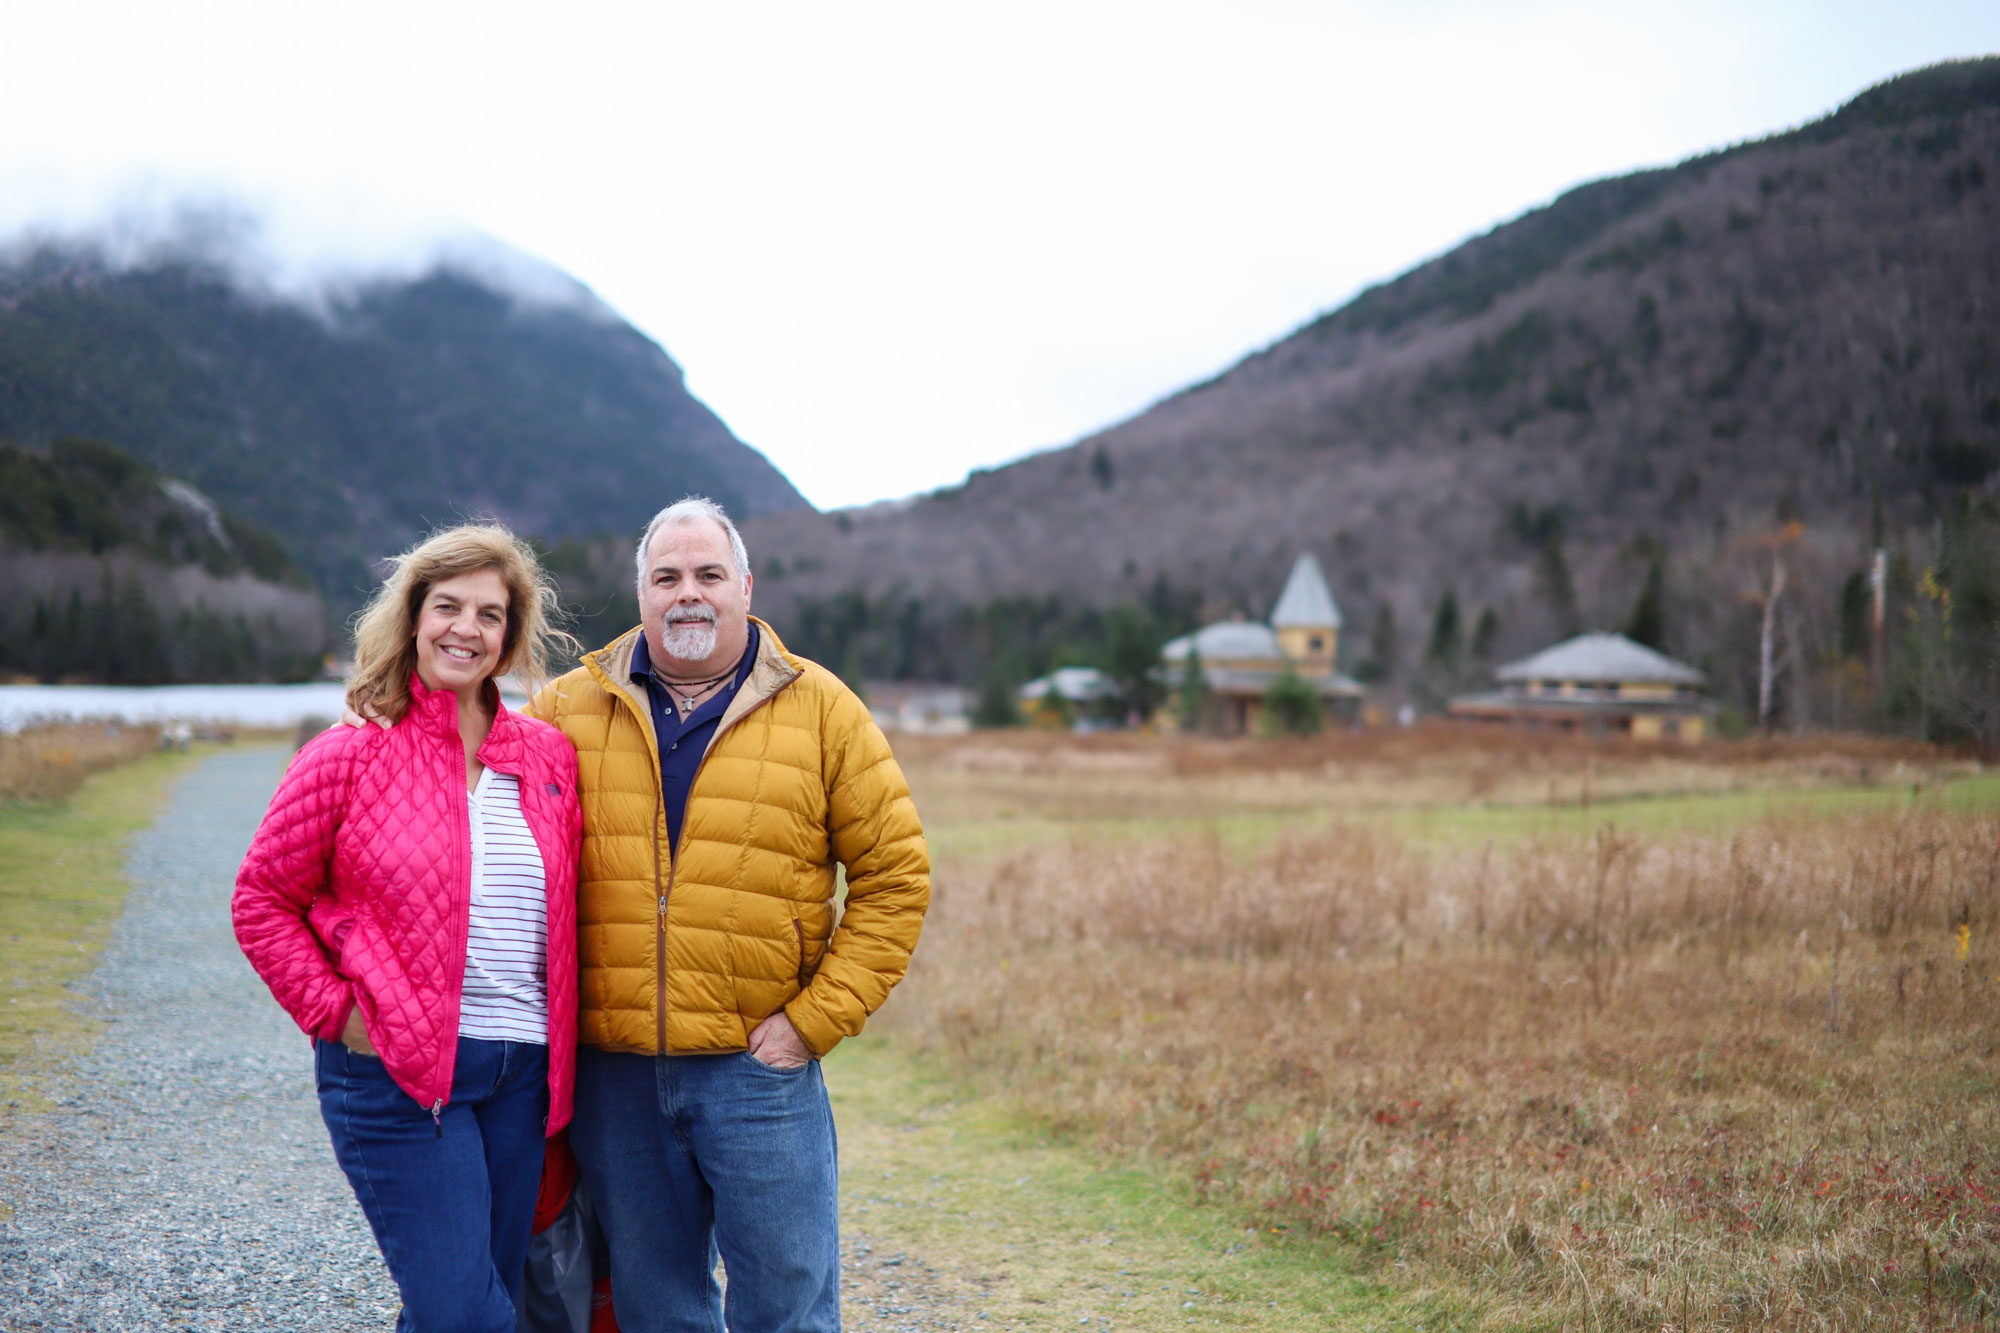 Katie and Tim in New Hampshire 2019